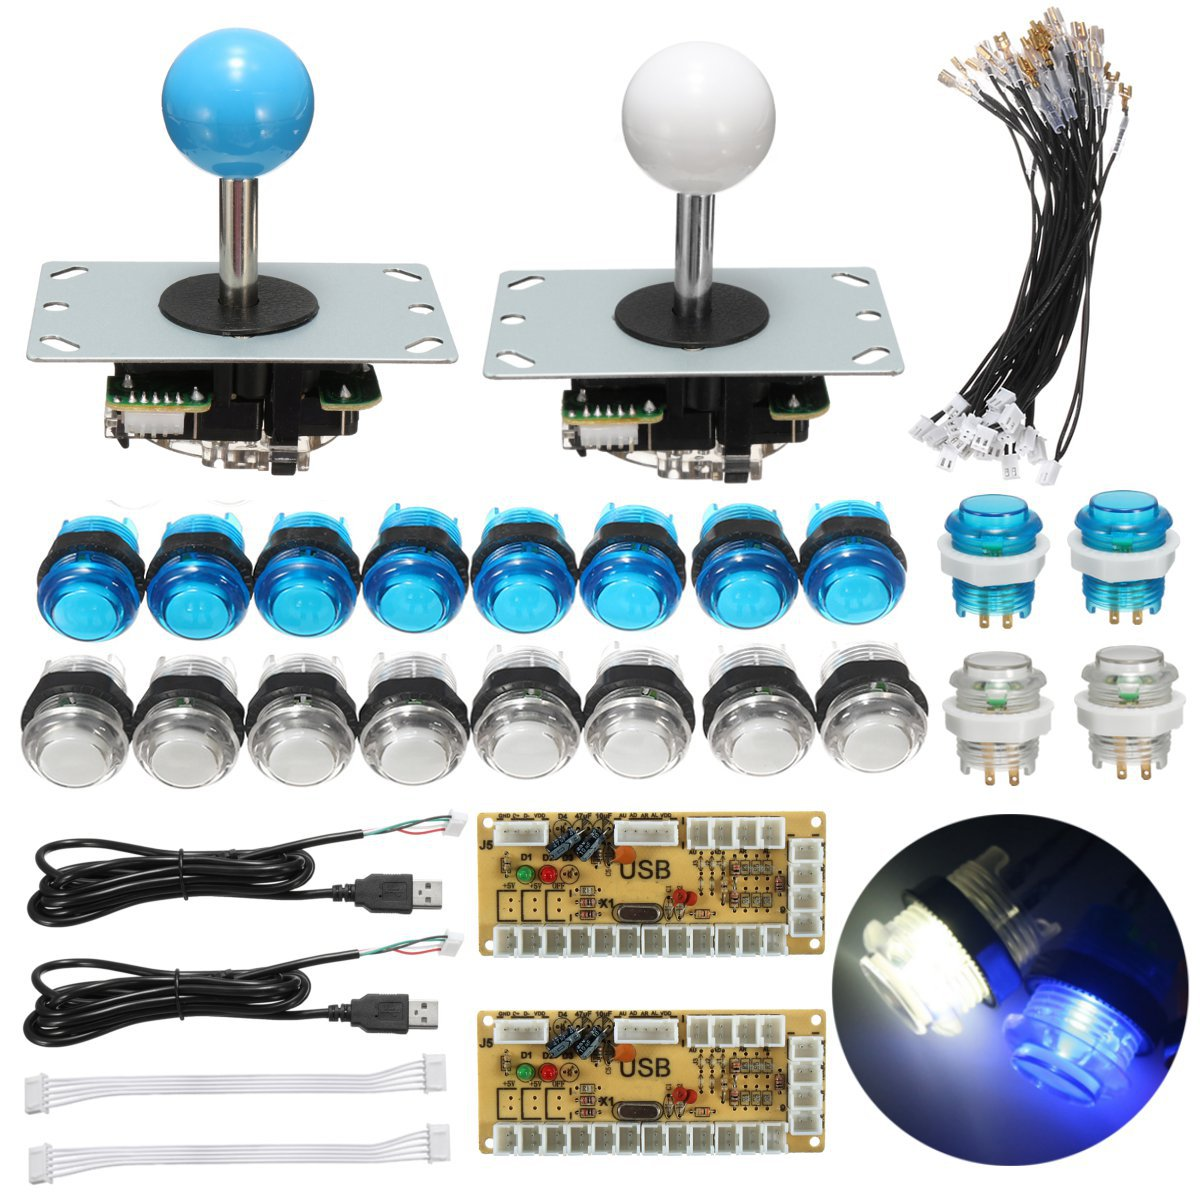 Zero Delay Joystick Arcade DIY Kit LED Push Button+Joystick+USB Encoder+Wire Harness USB Controller For Arcade Mame Arcade Game цена